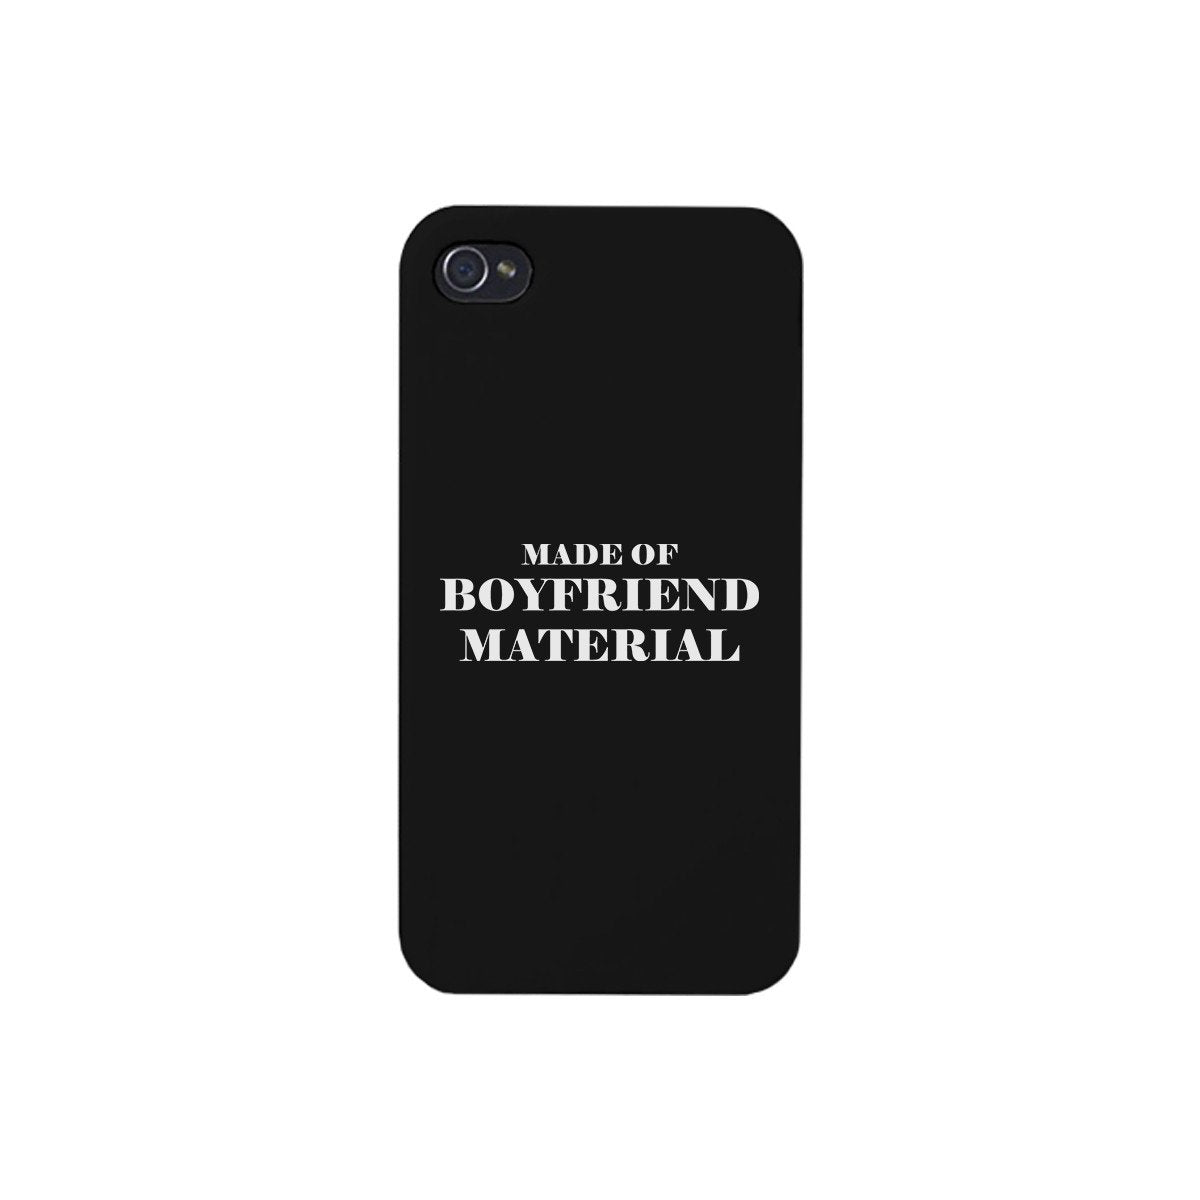 Boyfriend Material Black Cute Phone Cover Gift For Him